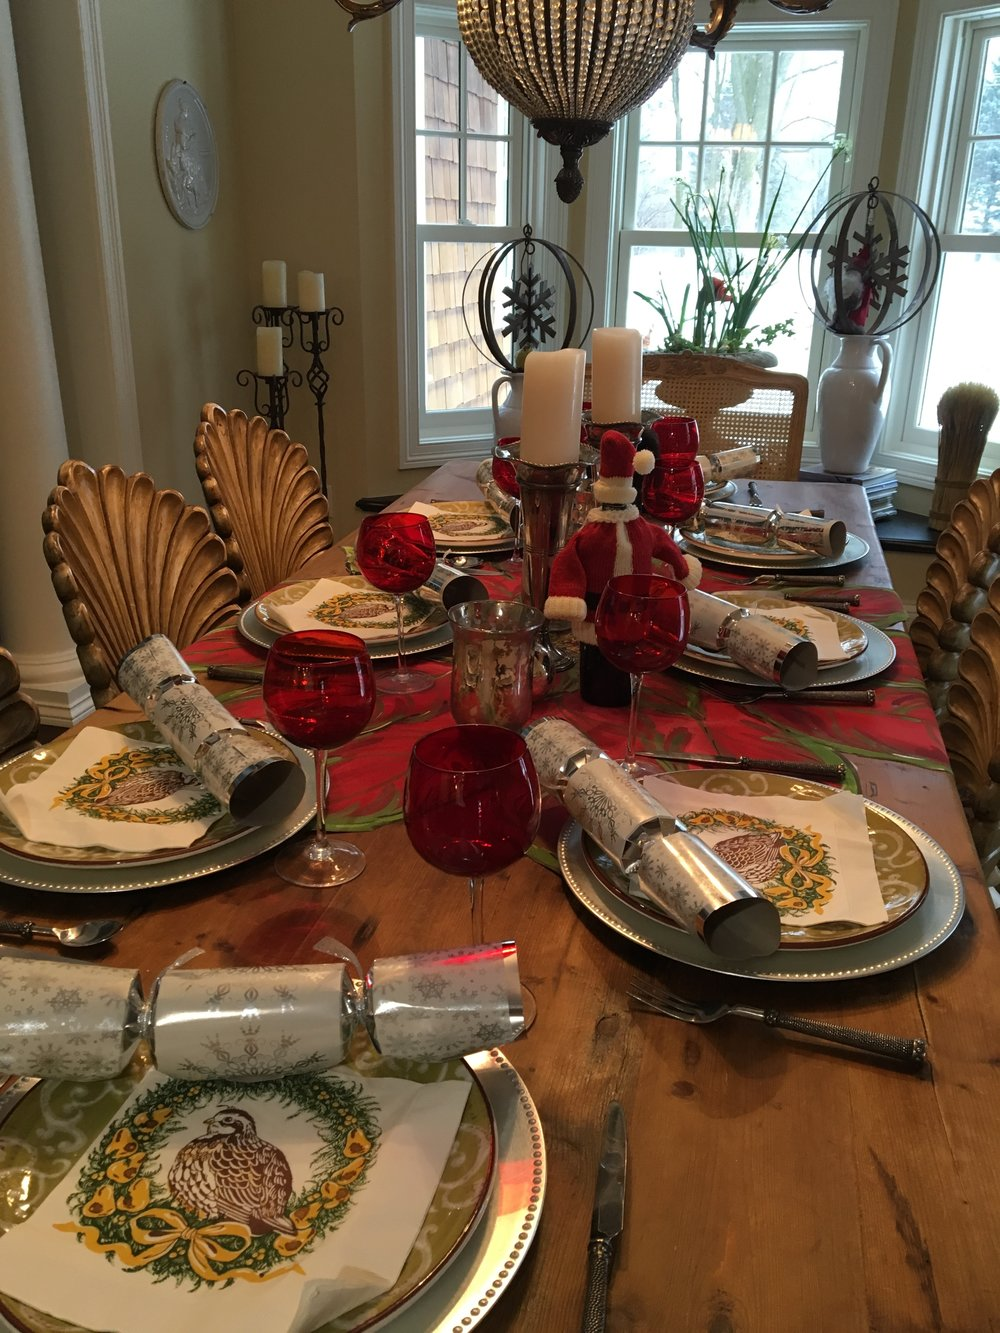 Its time to start thinking about the Holidays! Start with a table topper as design inspiration.